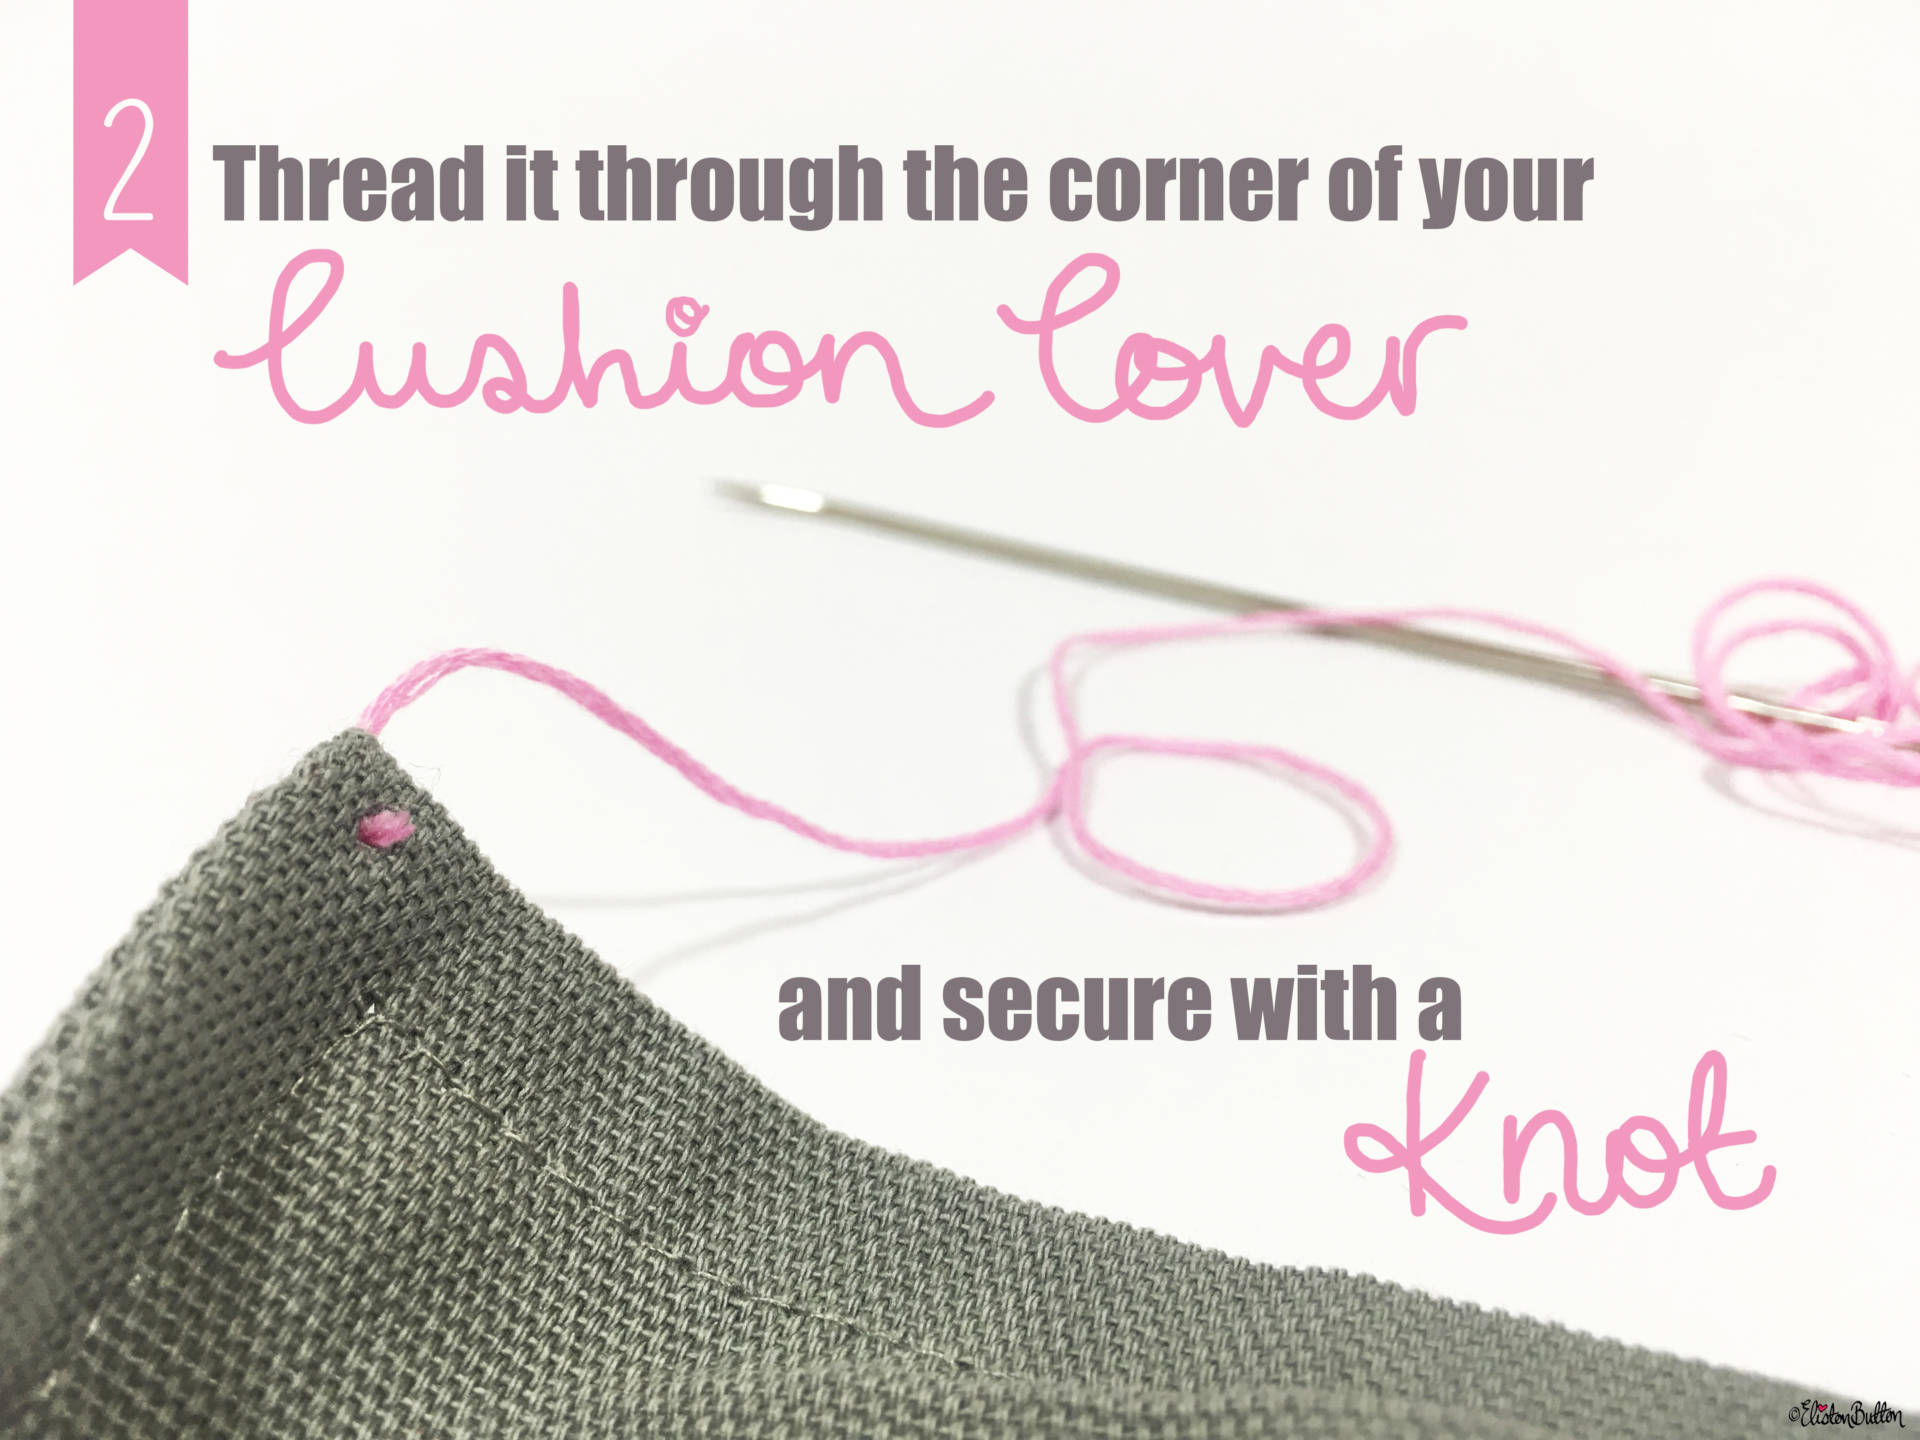 05. Thread it through the Corner of your Cushion Cover and Secure with a Knot - Tutorial Tuesday – Pom Pom Cushion Cover at www.elistonbutton.com - Eliston Button - That Crafty Kid – Art, Design, Craft & Adventure.